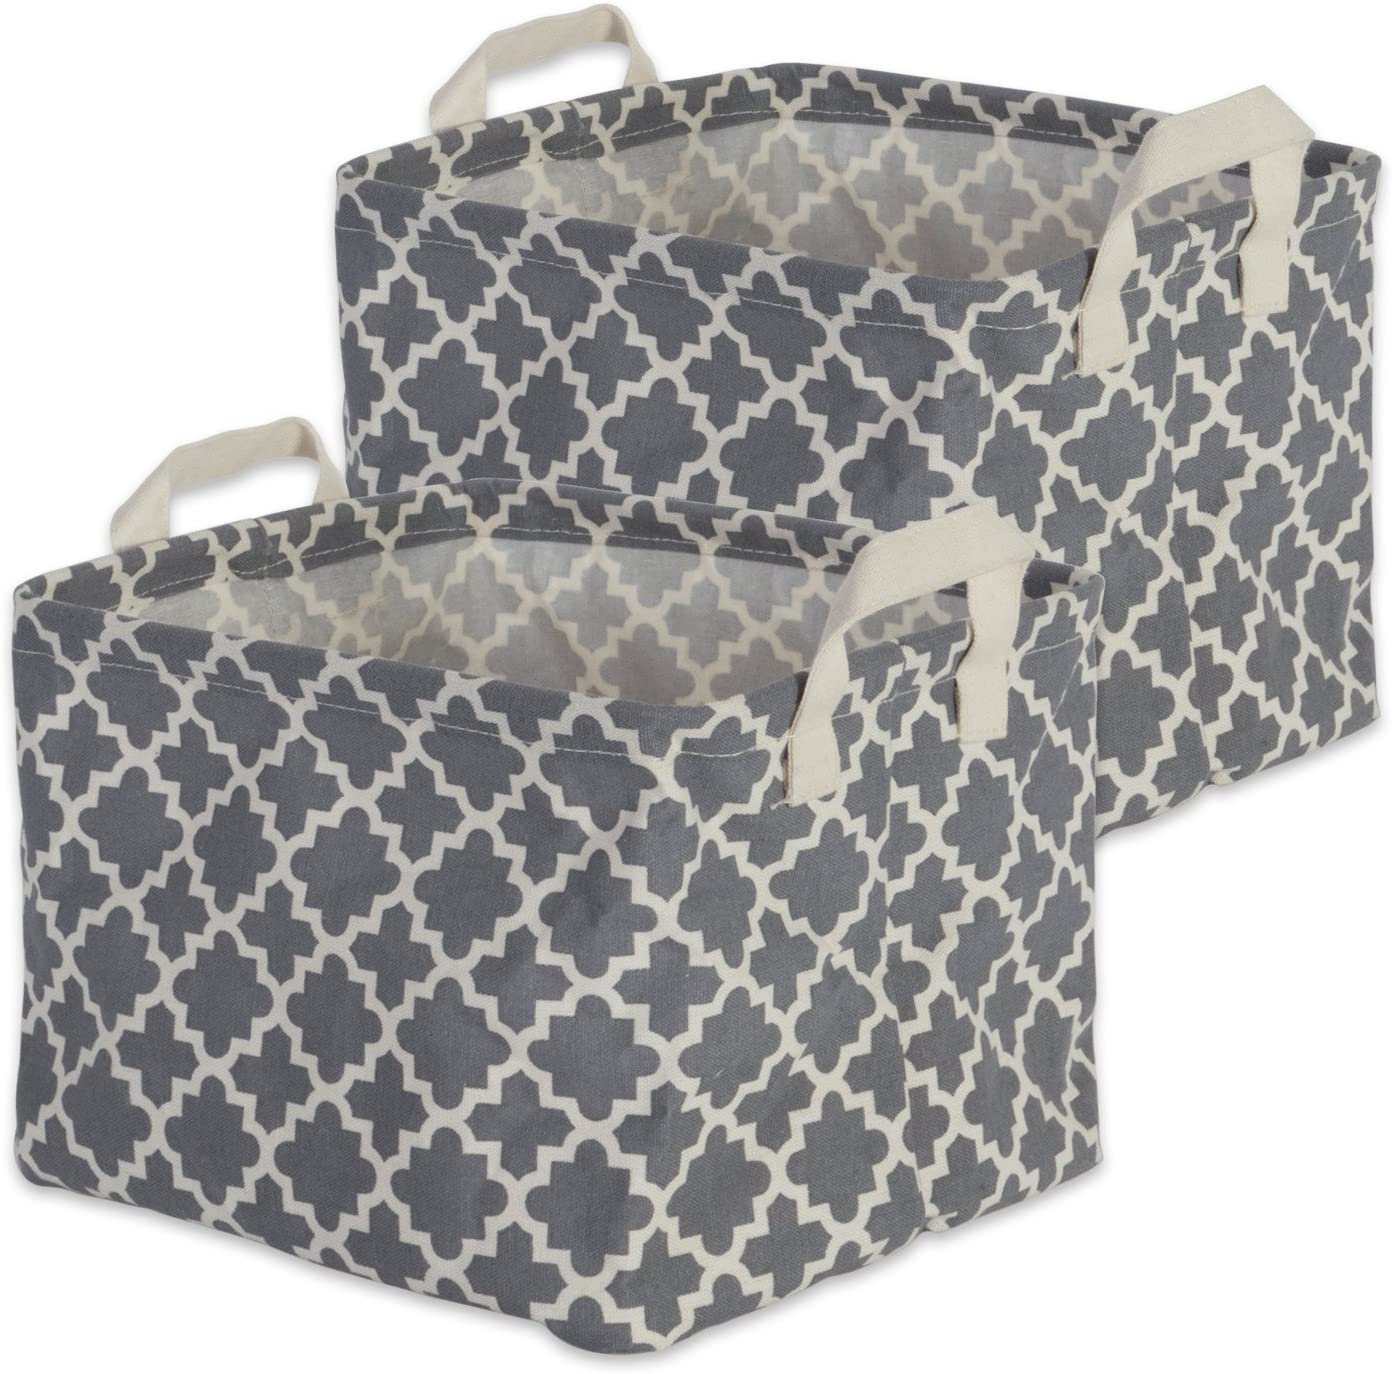 """DII Cotton/Polyester Cube Laundry Basket, Perfect In Your Bedroom, Nursery, Dorm, Closet, 9 x 12 x 8"""", Small Set of 2 - Gray Lattice"""